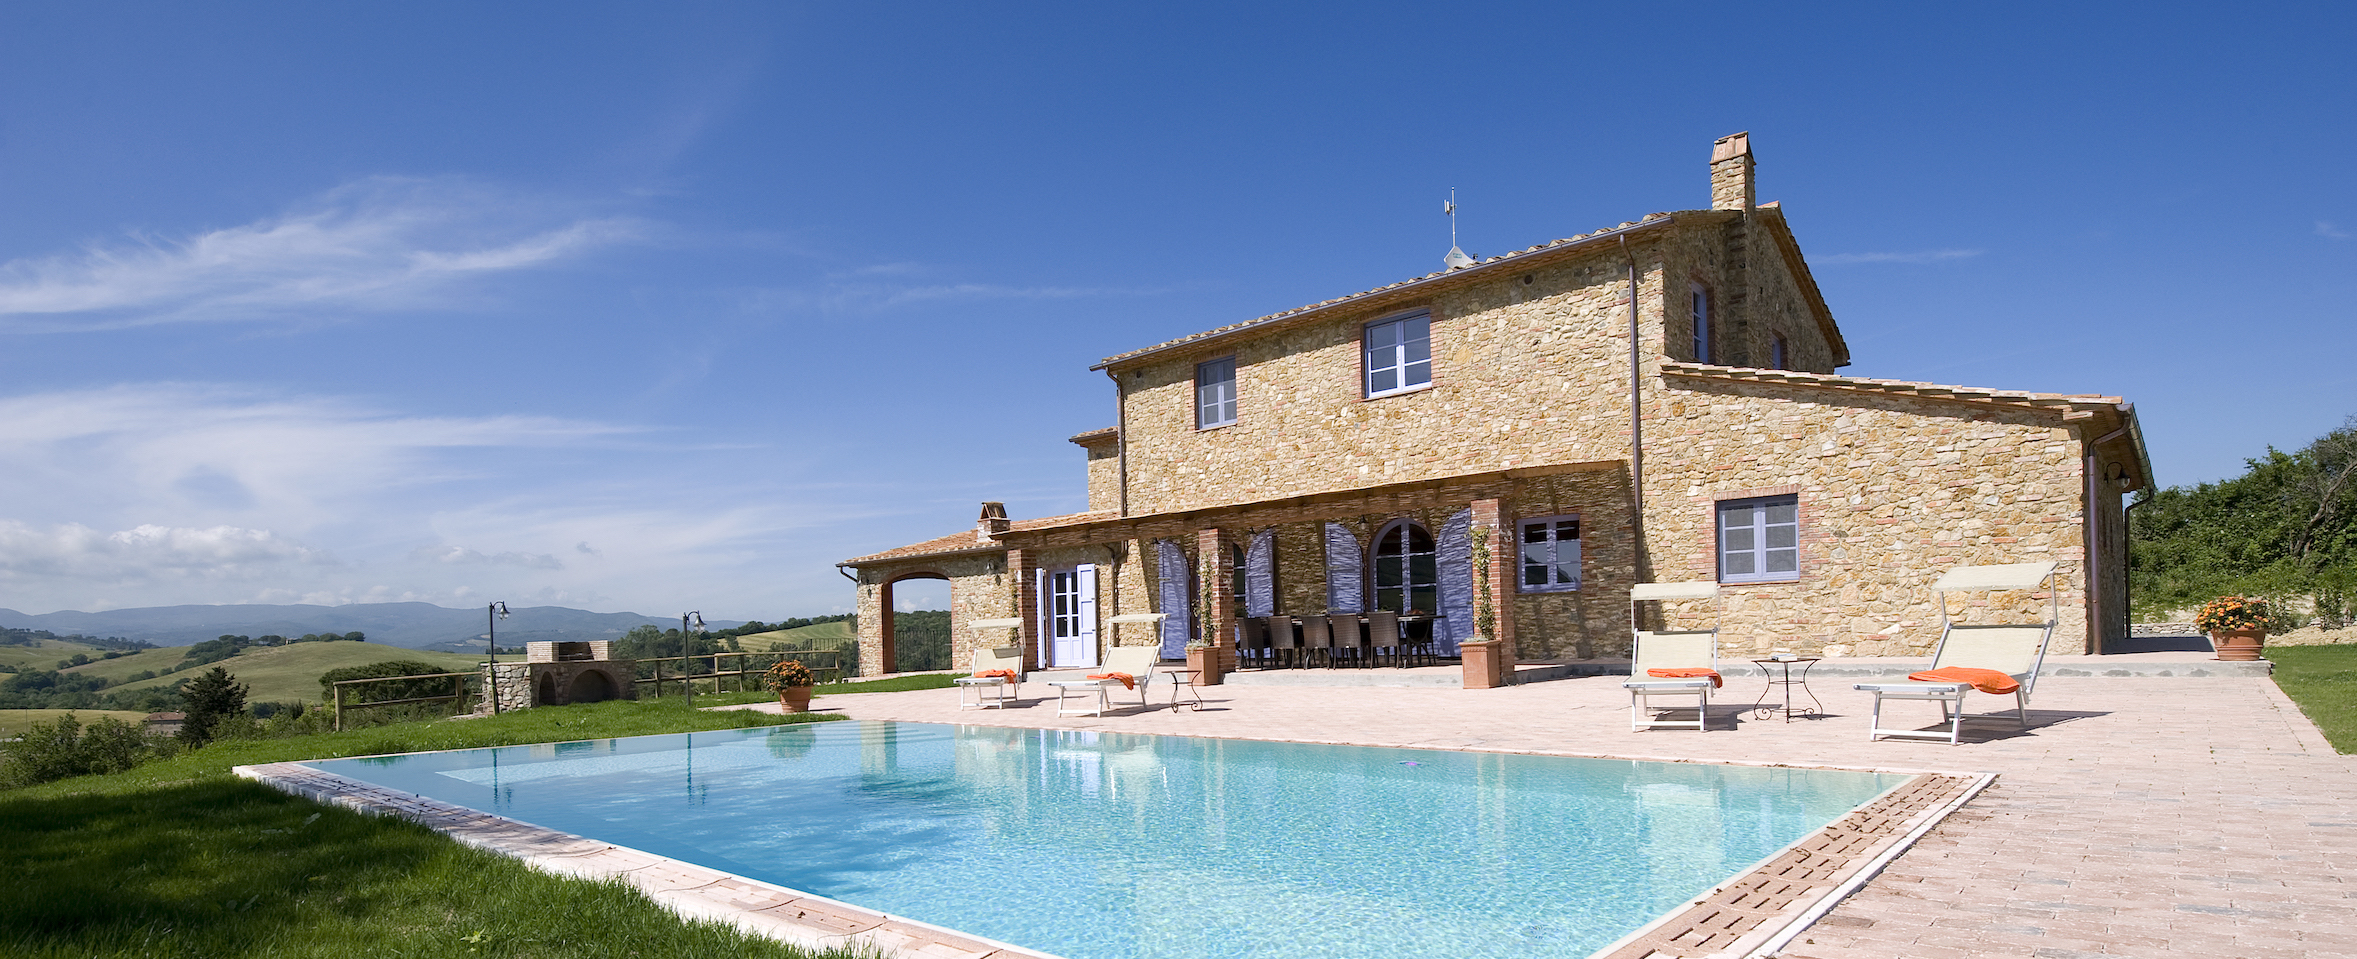 Private Villas In Tuscany With Swimming Pool Live The